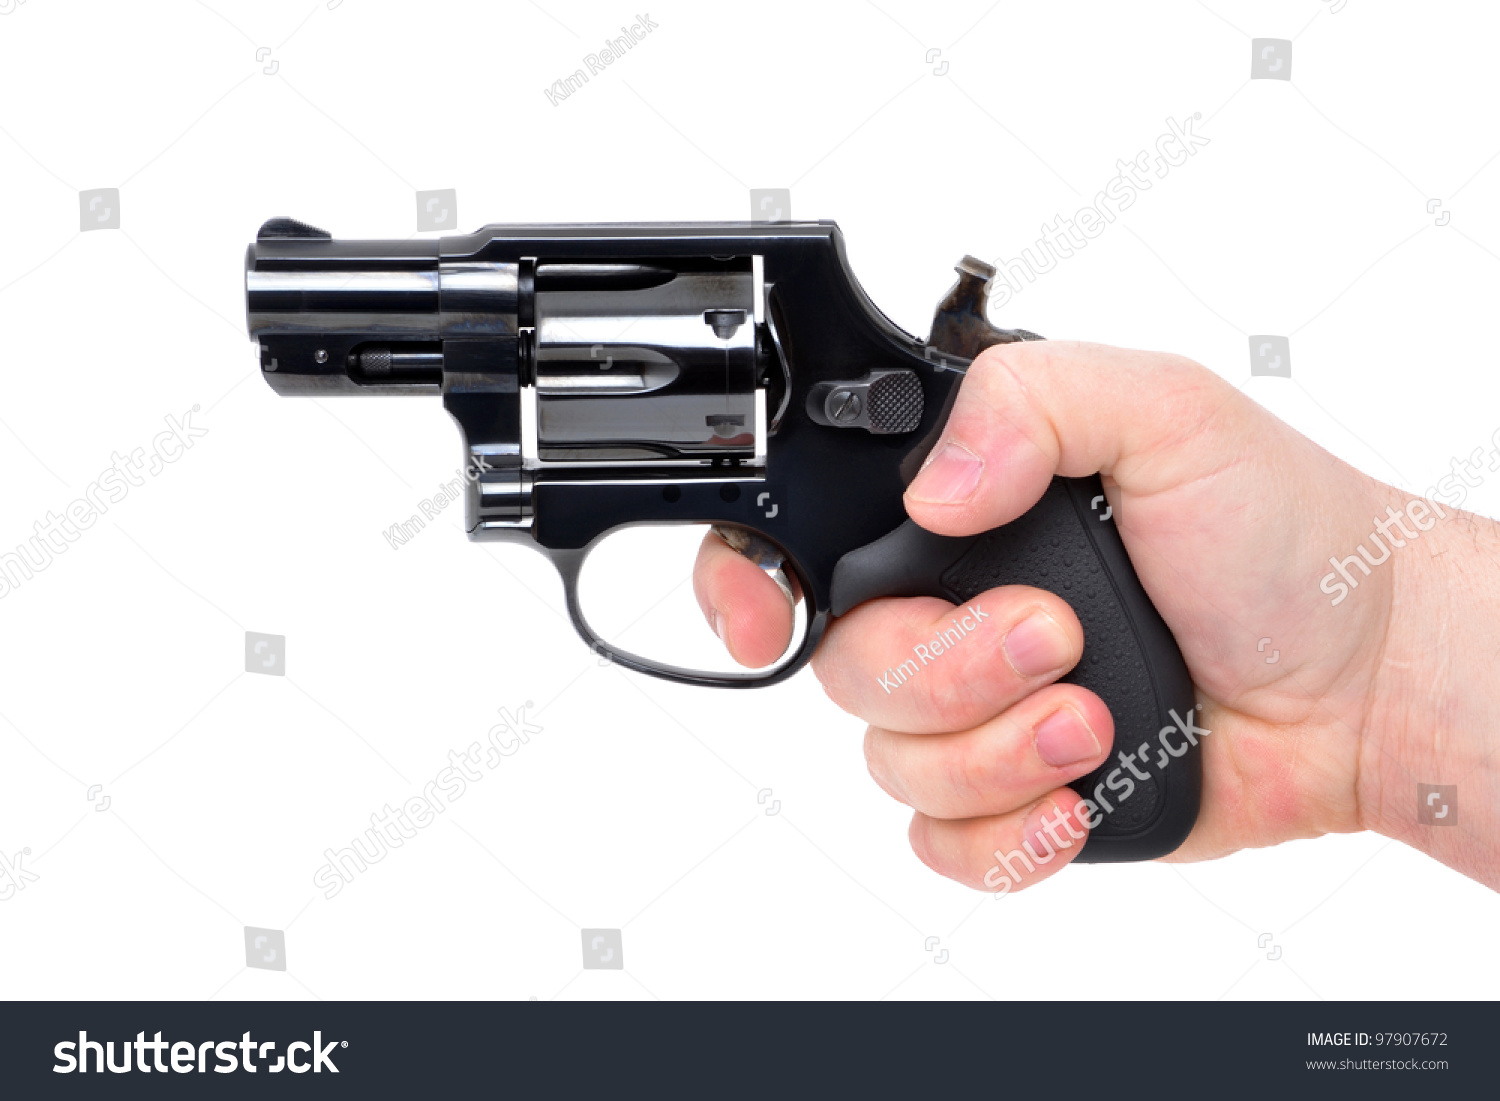 Hand Holding A Revolver Pistol Stock Photo 97907672 ...